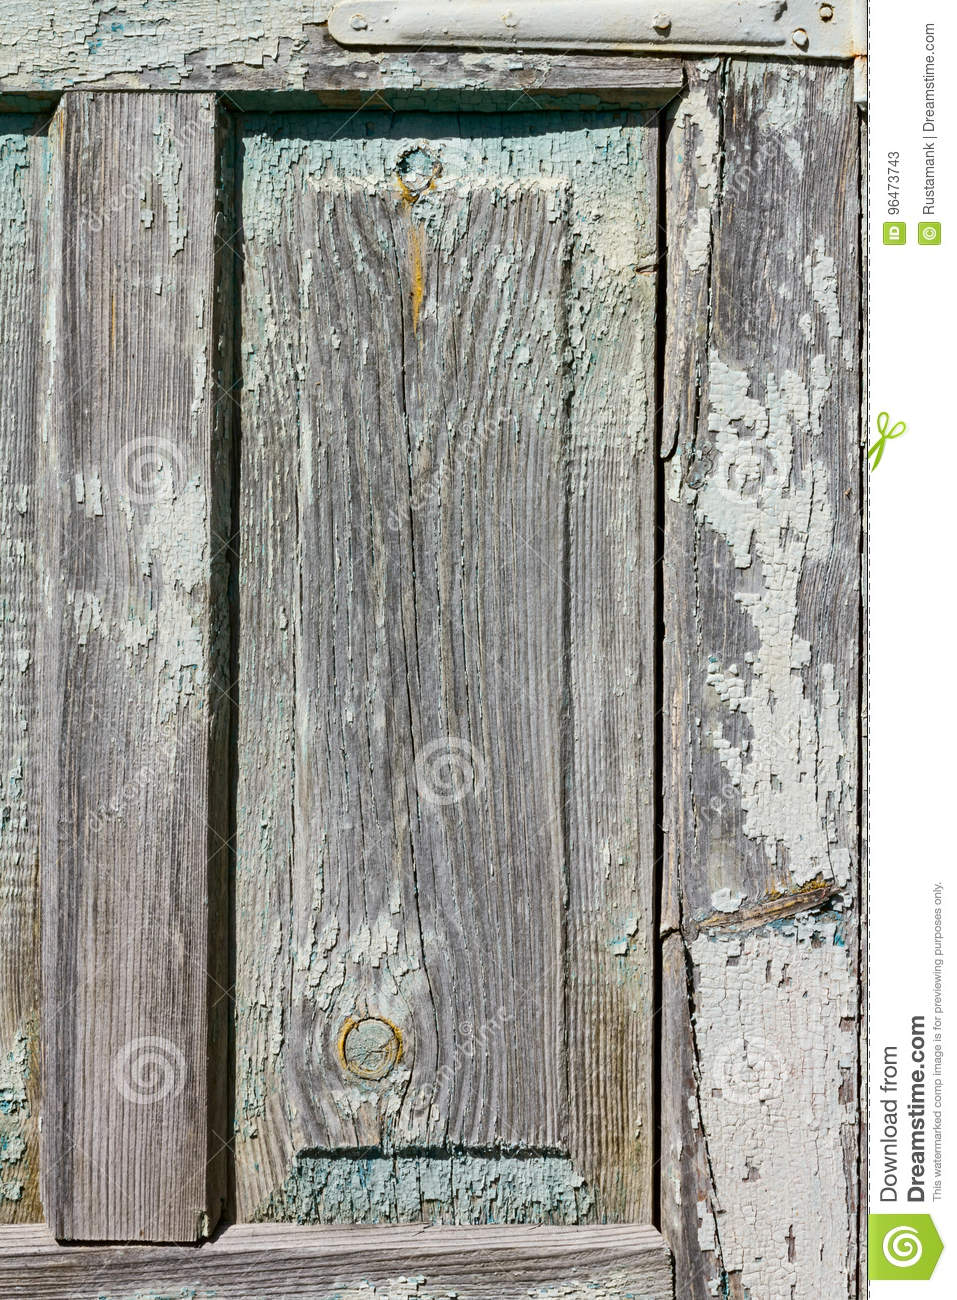 Parts and elements of the old antique wooden rustic doors - Parts And Elements Of The Old Antique Wooden Rustic Doors Stock